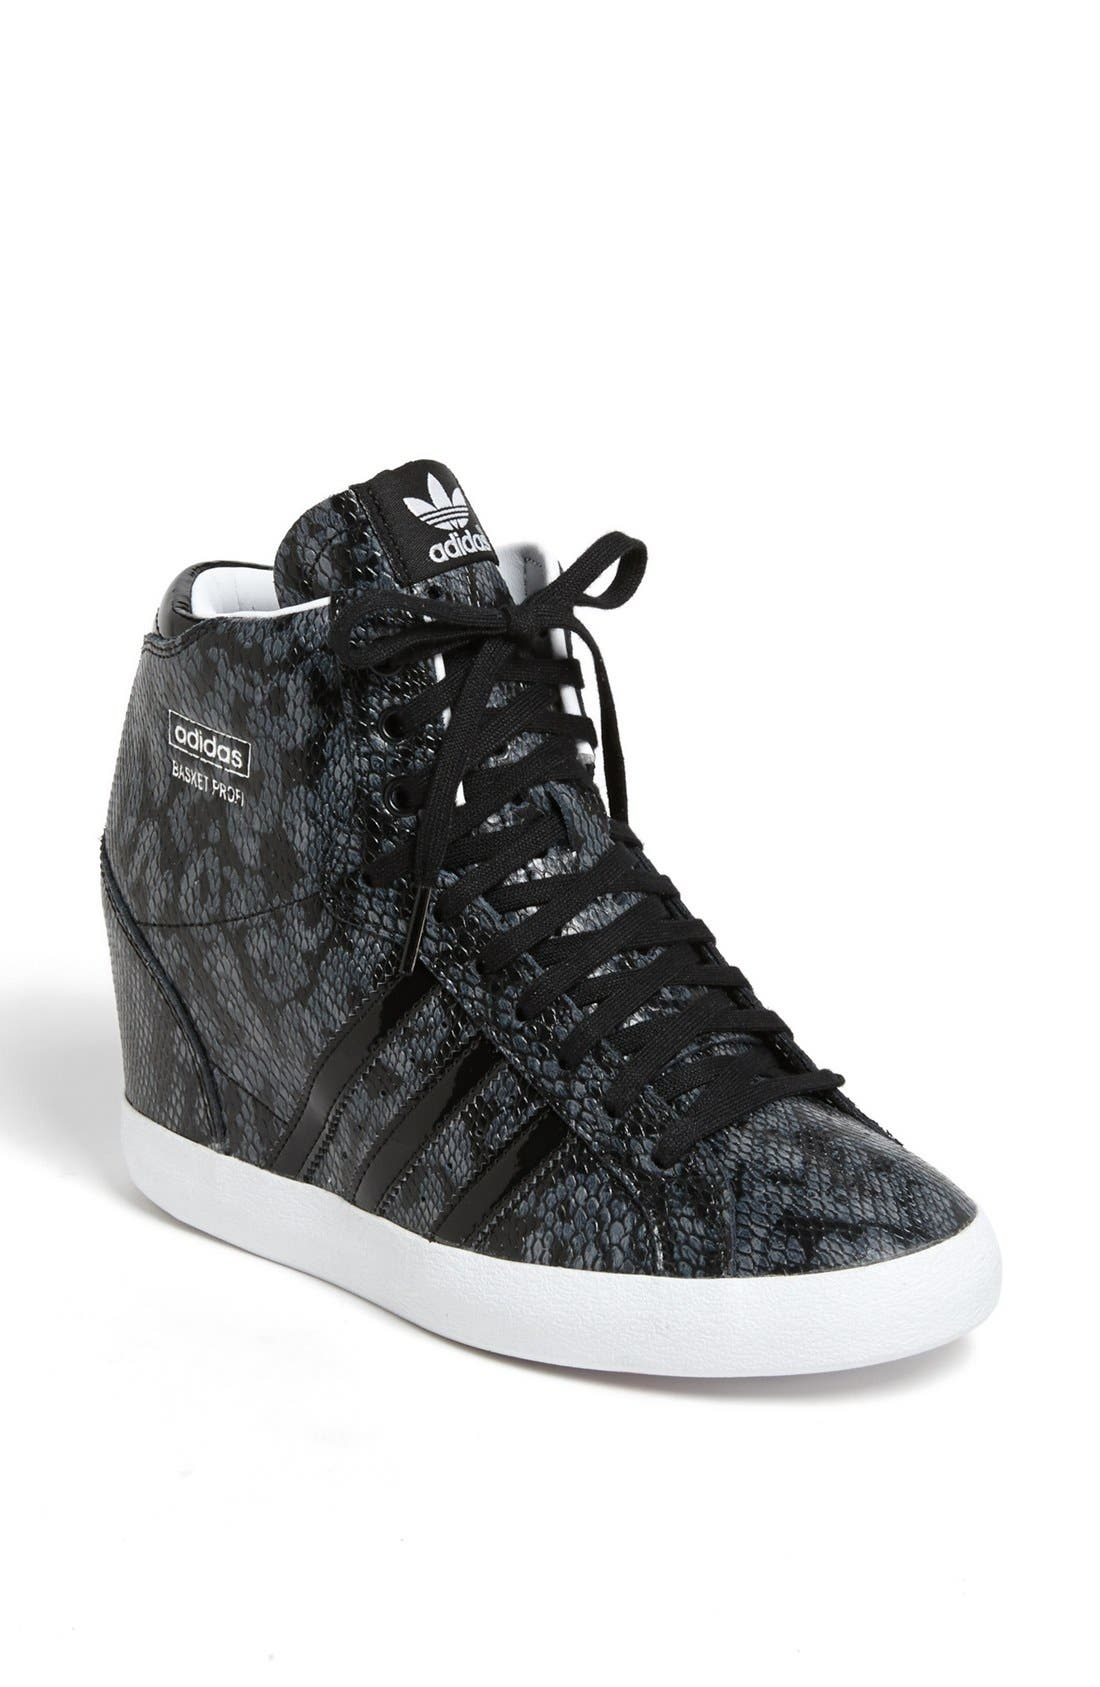 Main Image - adidas 'Basket Profi' Hidden Wedge Sneaker (Women)